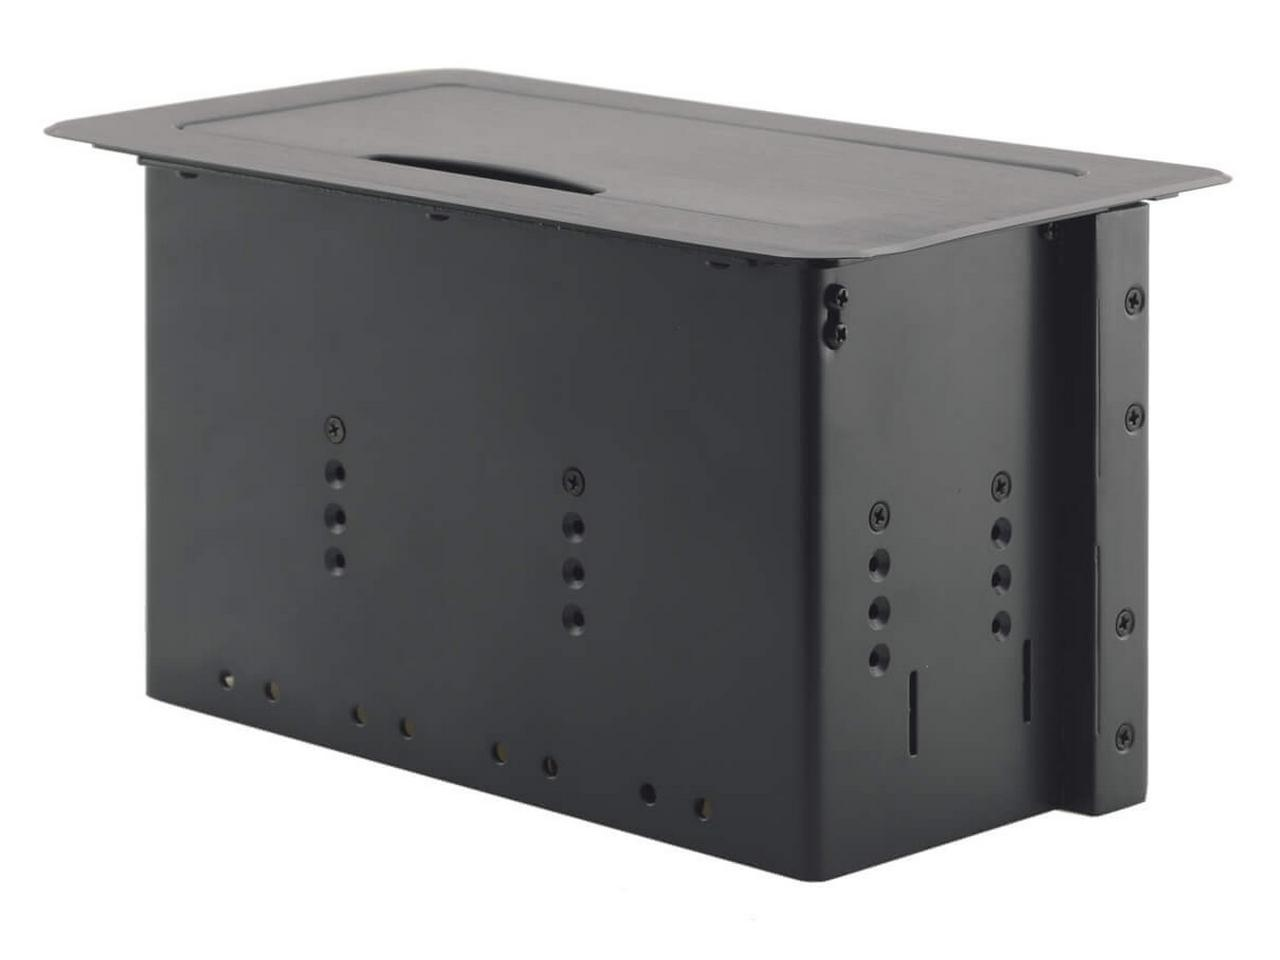 TBUS-6xl(B) Table Mount Modular Multi-Connection Solution/Black by Kramer